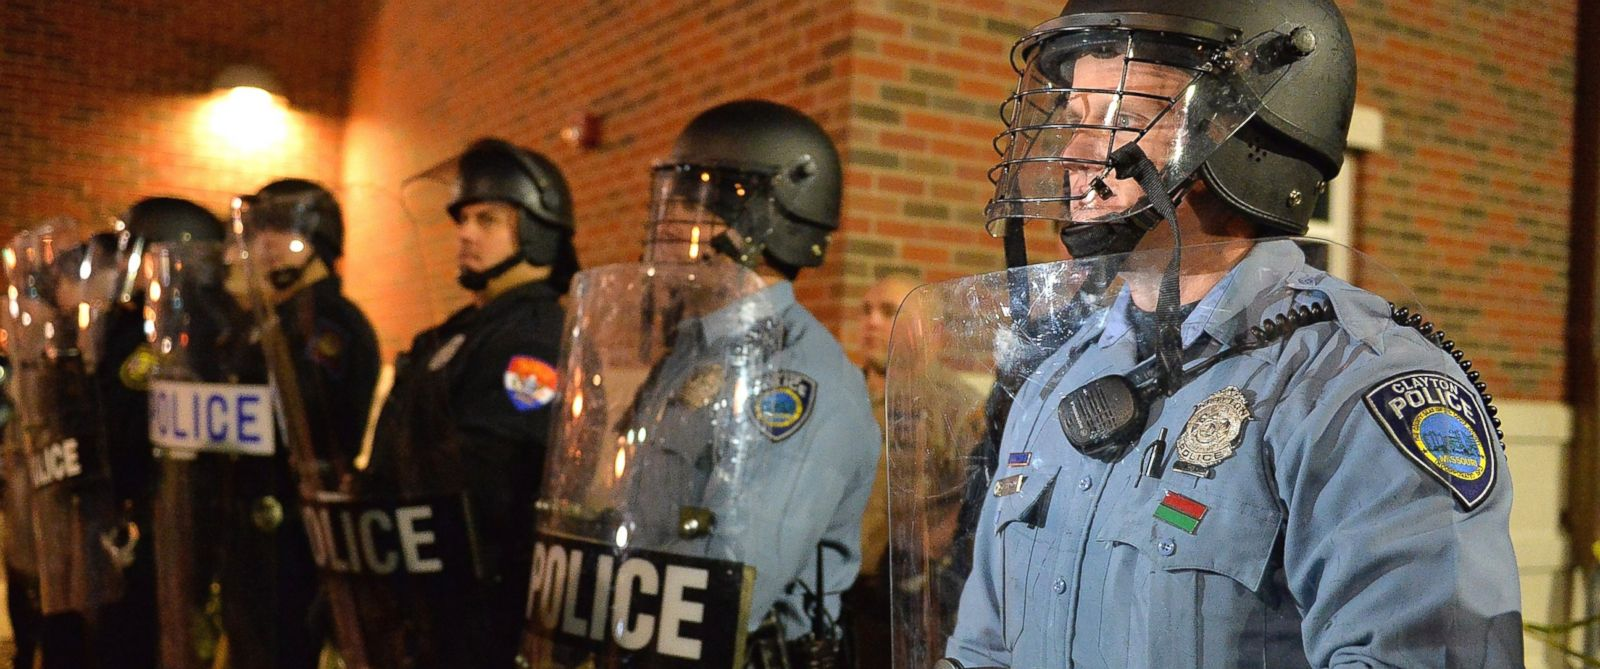 PHOTO: Police officers stand in riot gear during a protest, Nov. 19, 2014 outside the Ferguson Police Department in Ferguson, Mo.